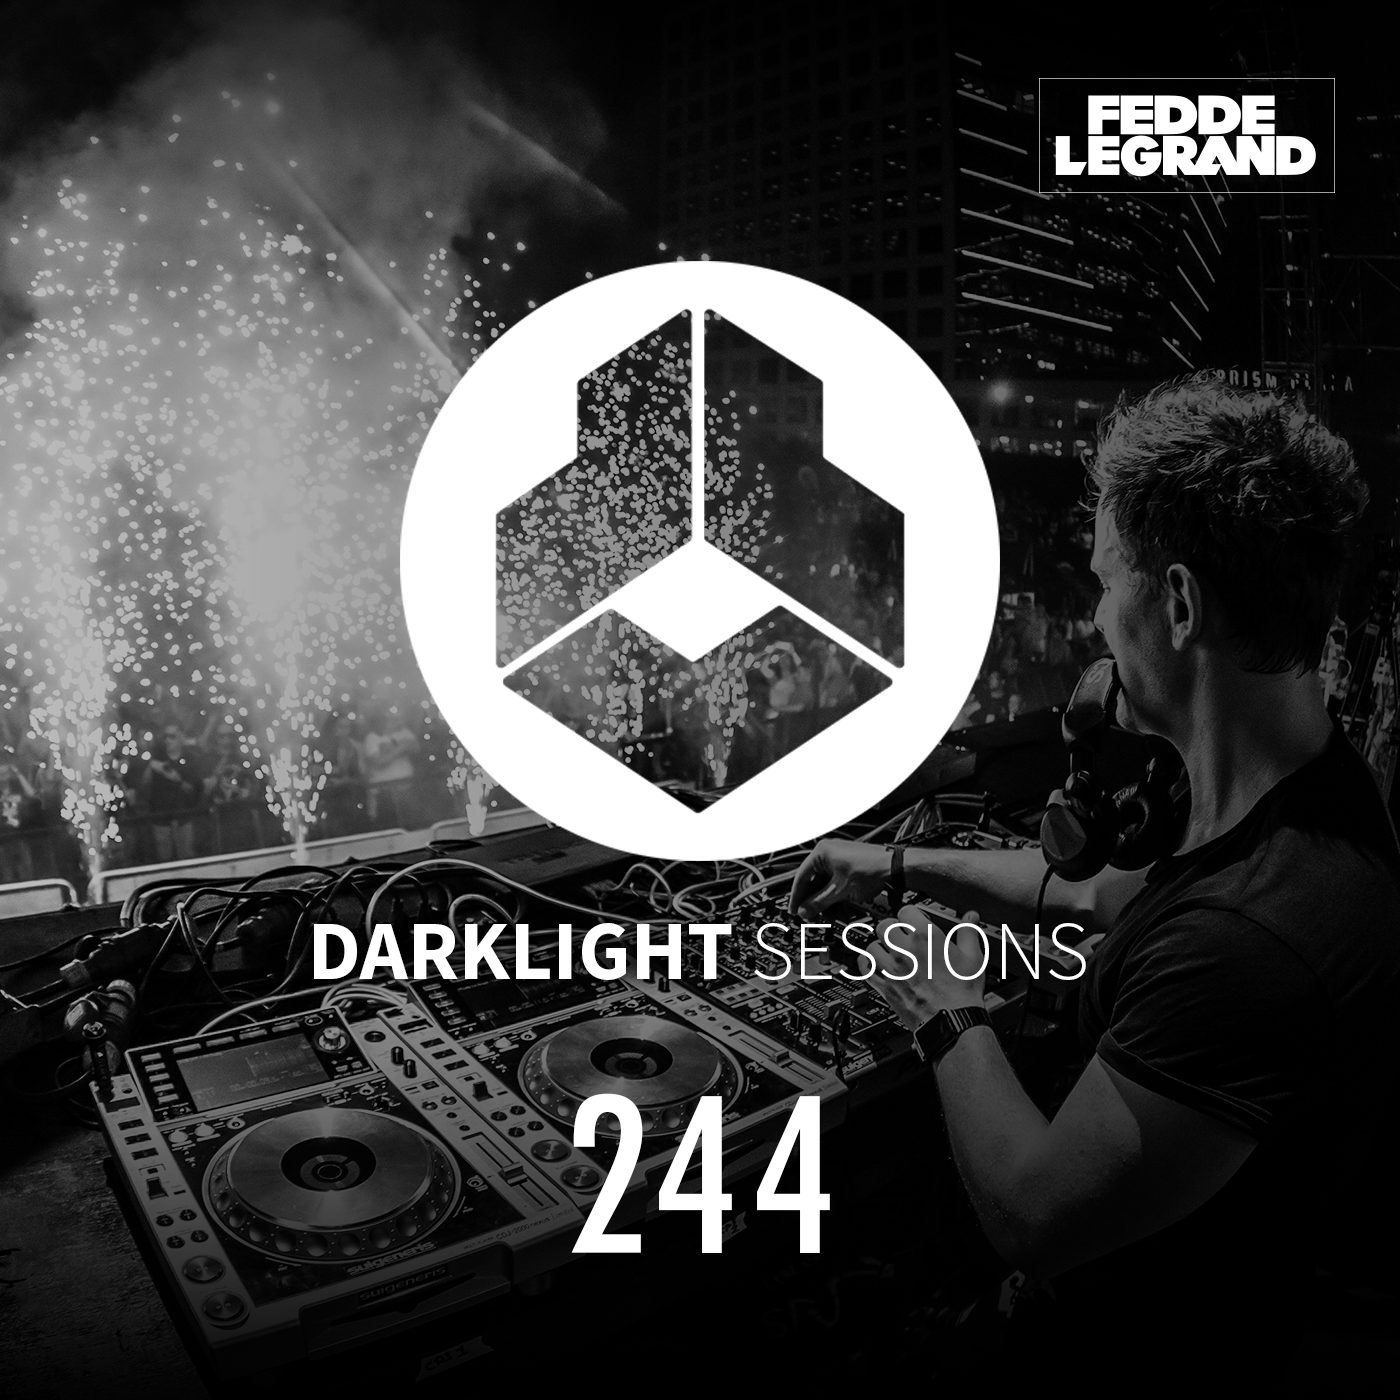 Darklight Sessions 244